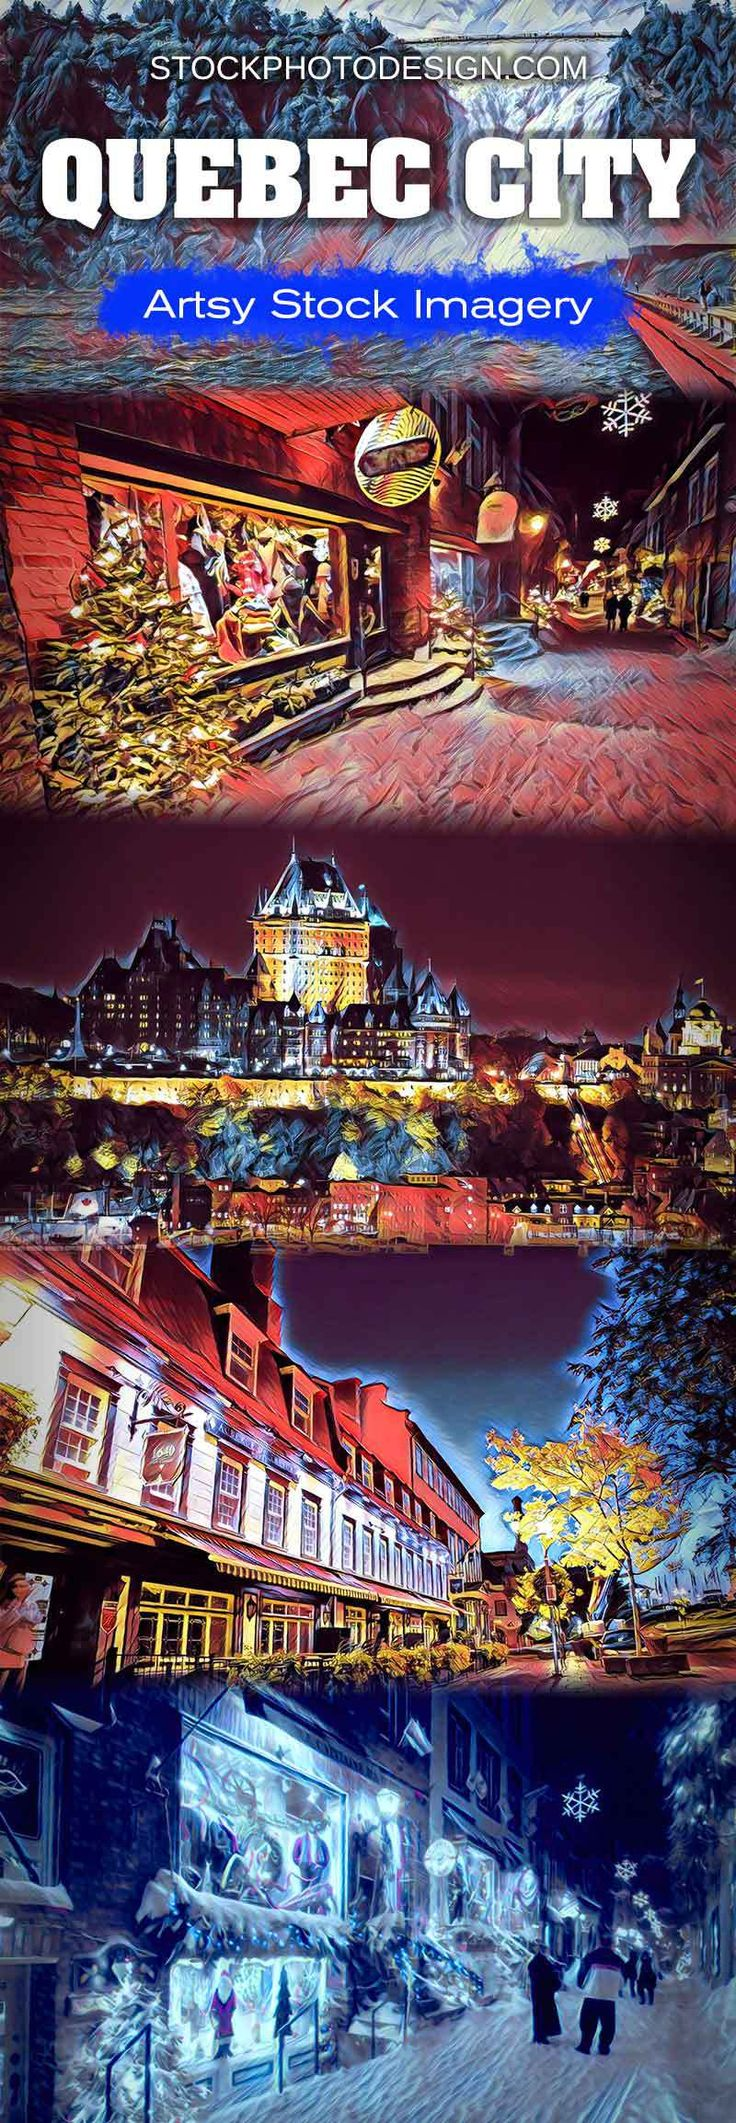 Quebec City - Artsy RF Stock Images at Great Prices - Stockphotodesign.com